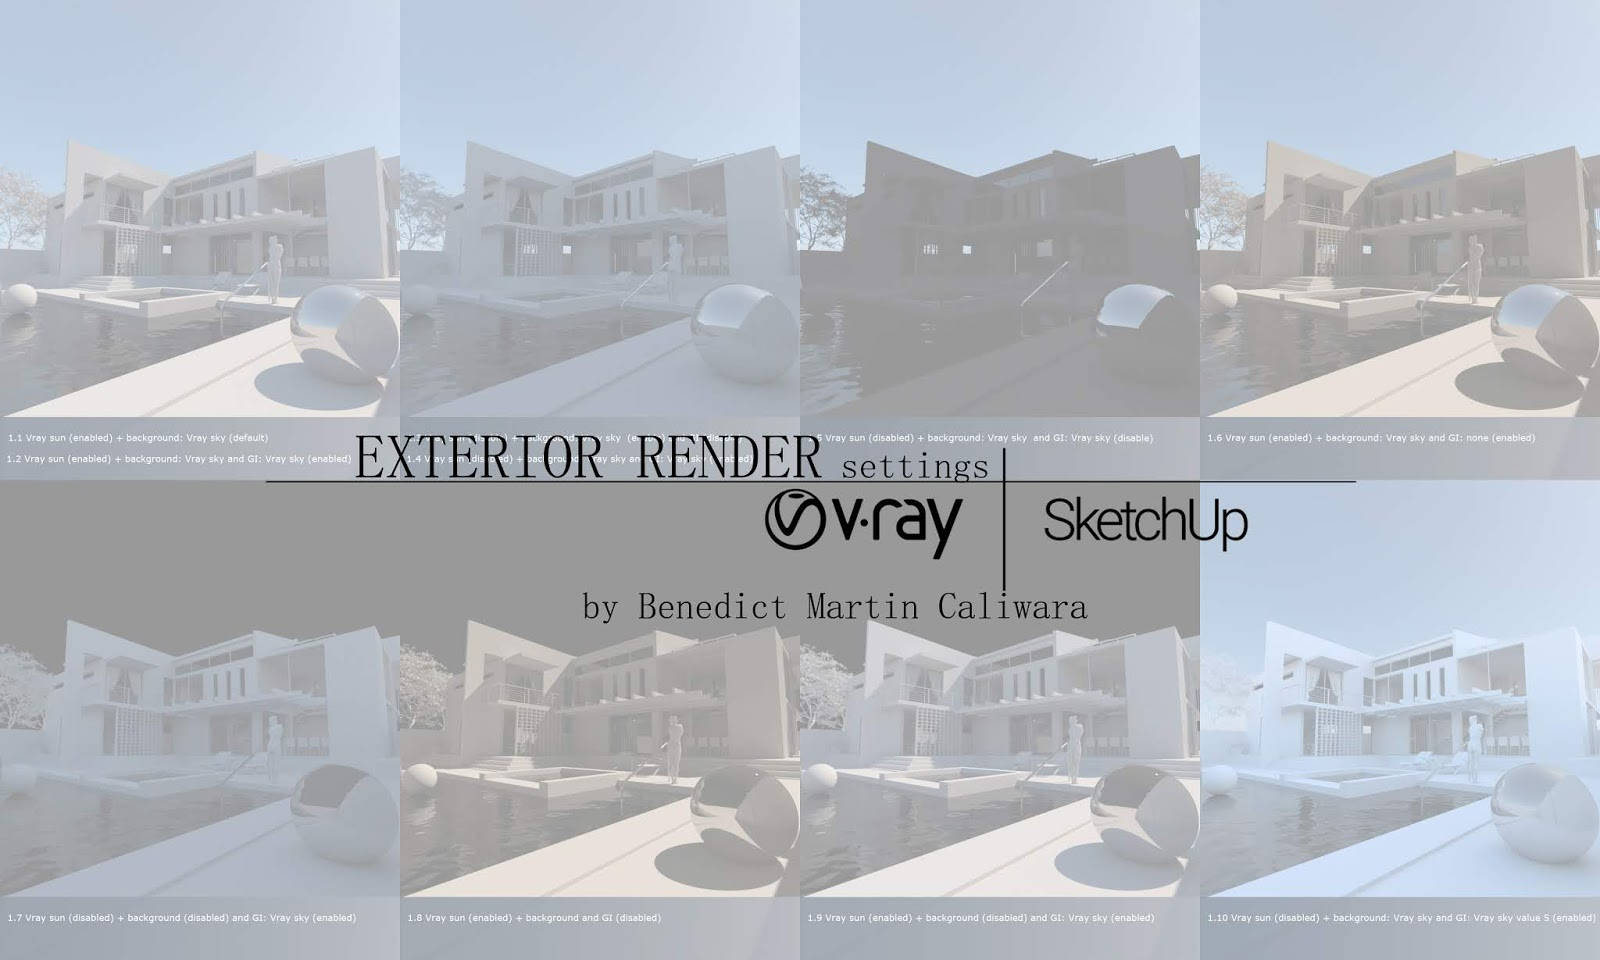 Exterior render settings vray 3 4 for sketchup - Vray realistic render settings exterior ...